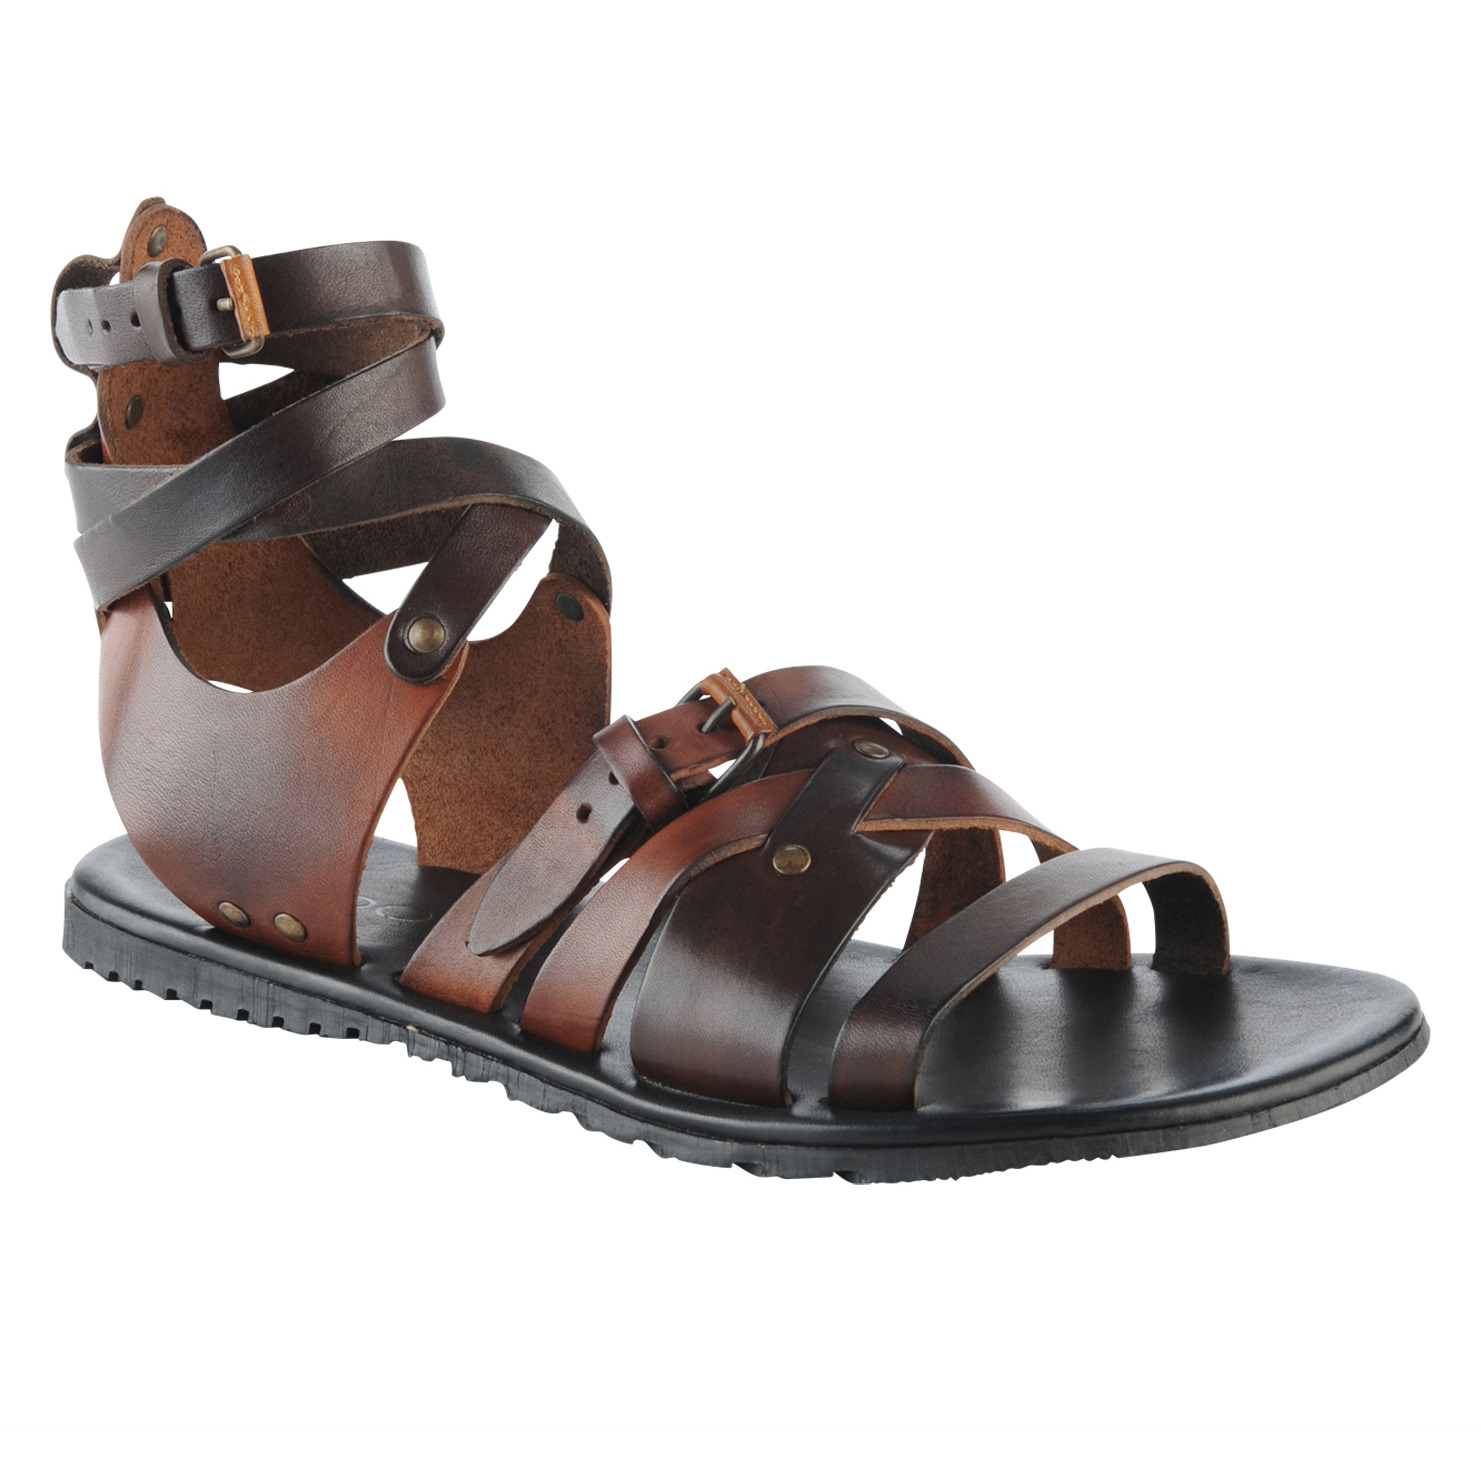 97db5b3f4 Men s Brown Howery. See more Brown Leather sandals.